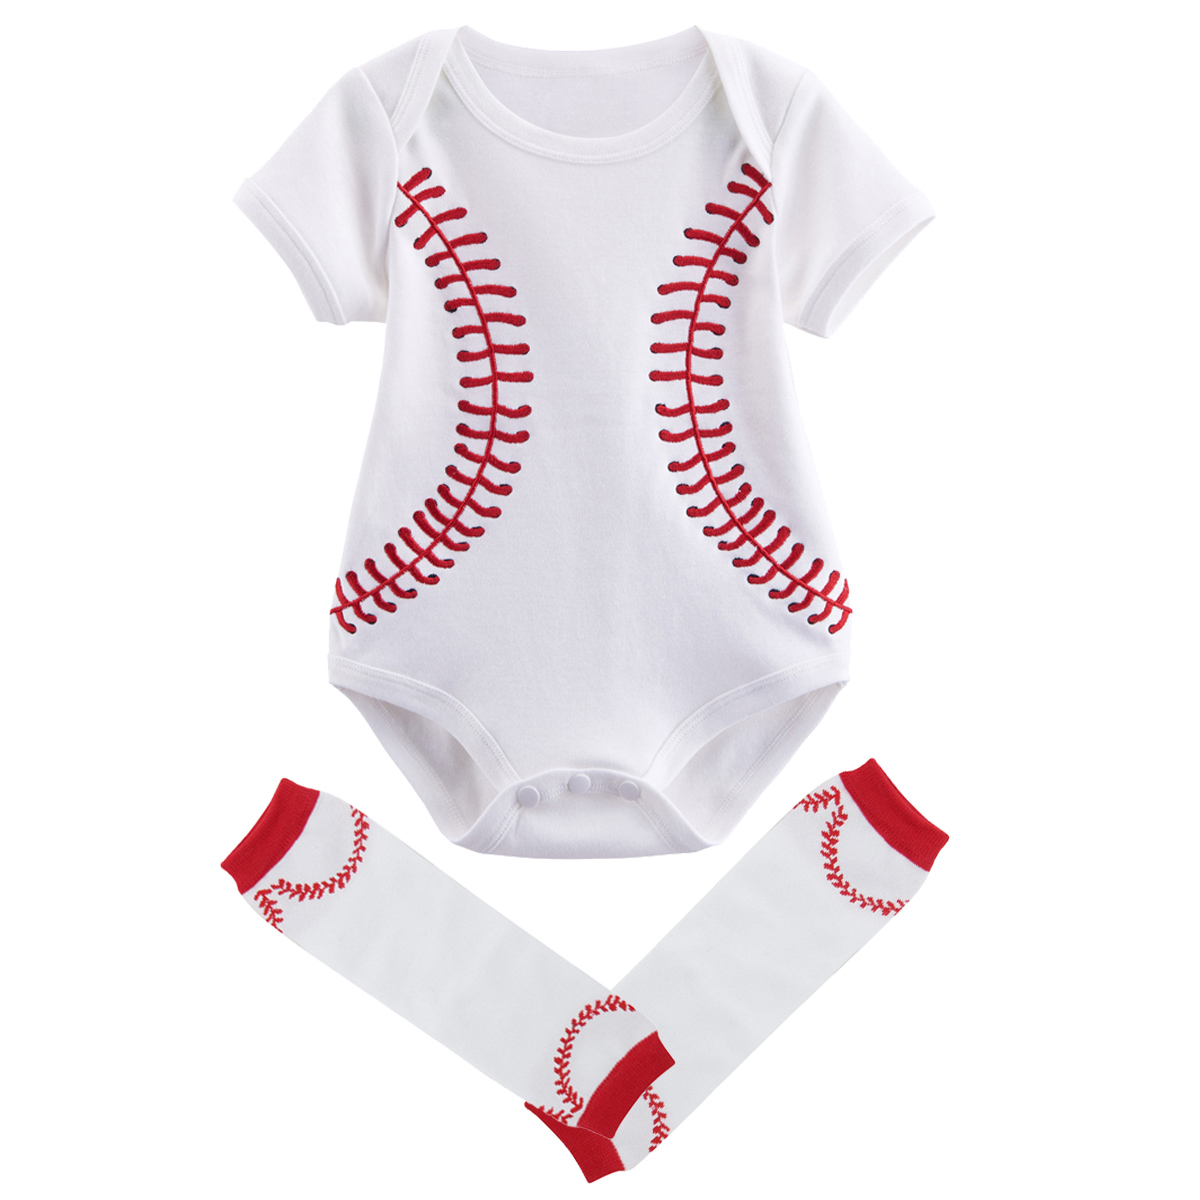 Newborn Boy Cosplay Costume Baseball Bodysuit Outfits Baby Halloween Costumes for Baby Summer Shorts Sleeve Clothes